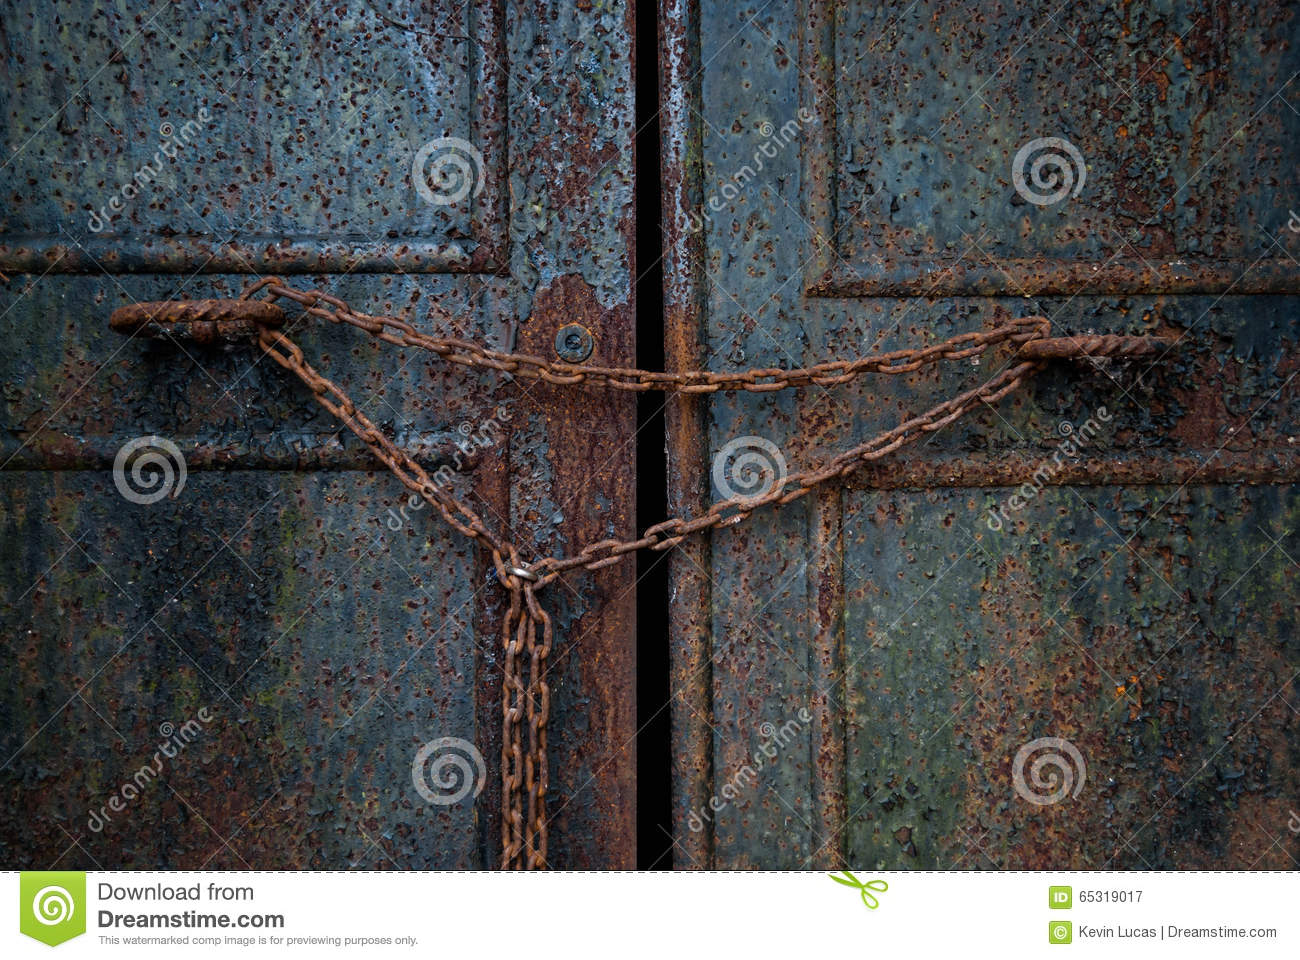 Rusty Door rusty door with chain stock photo - image: 65319017